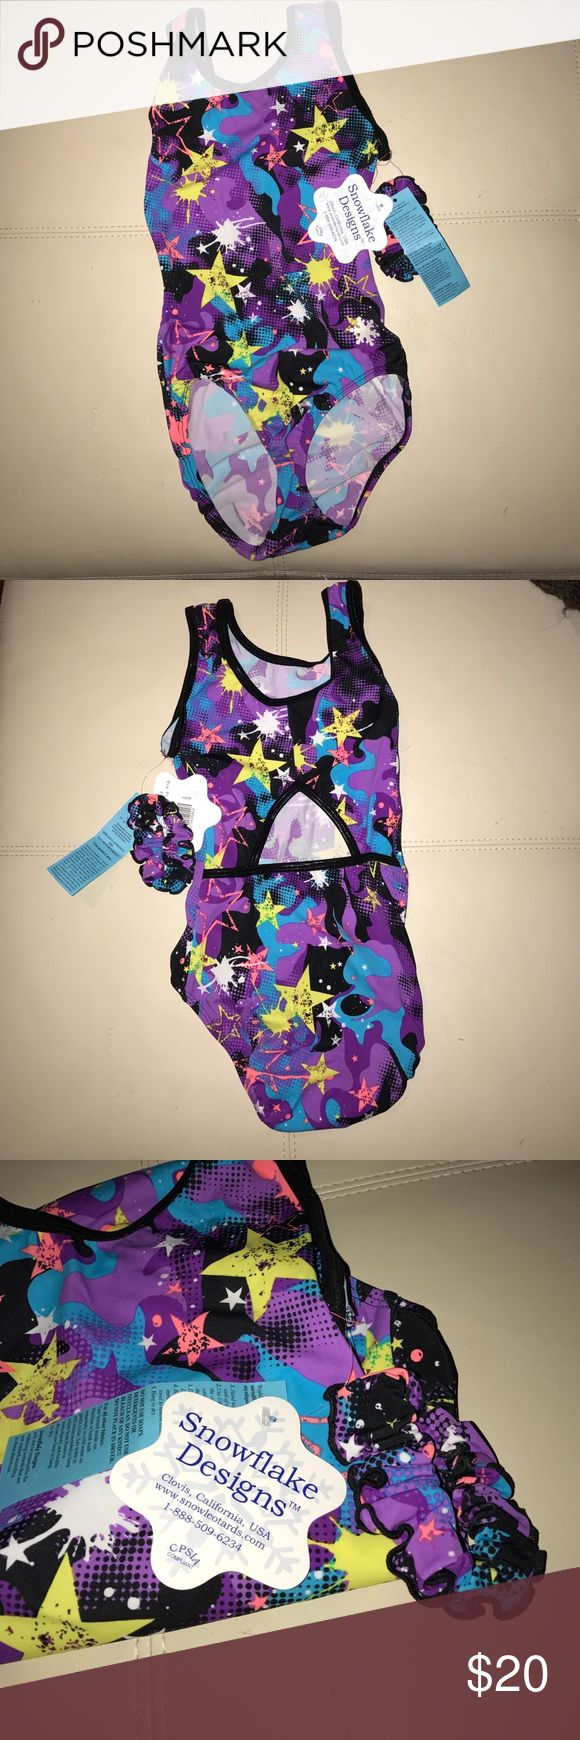 | Snowflake Designs | Leotard • Snowflake Designs - Adult Leotard. • Tag says Adult X - Sm but honestly looks like a child's leotard, probably would fit a teenage girl. (Selling for a friend). Brand new with tags and comes with Hair Scrunchie to match outfit.   Ask all questions prior to purchasing.  Fast Shipment.  Bundles encouraged for discounts. Snowflake Designs Costumes Dance